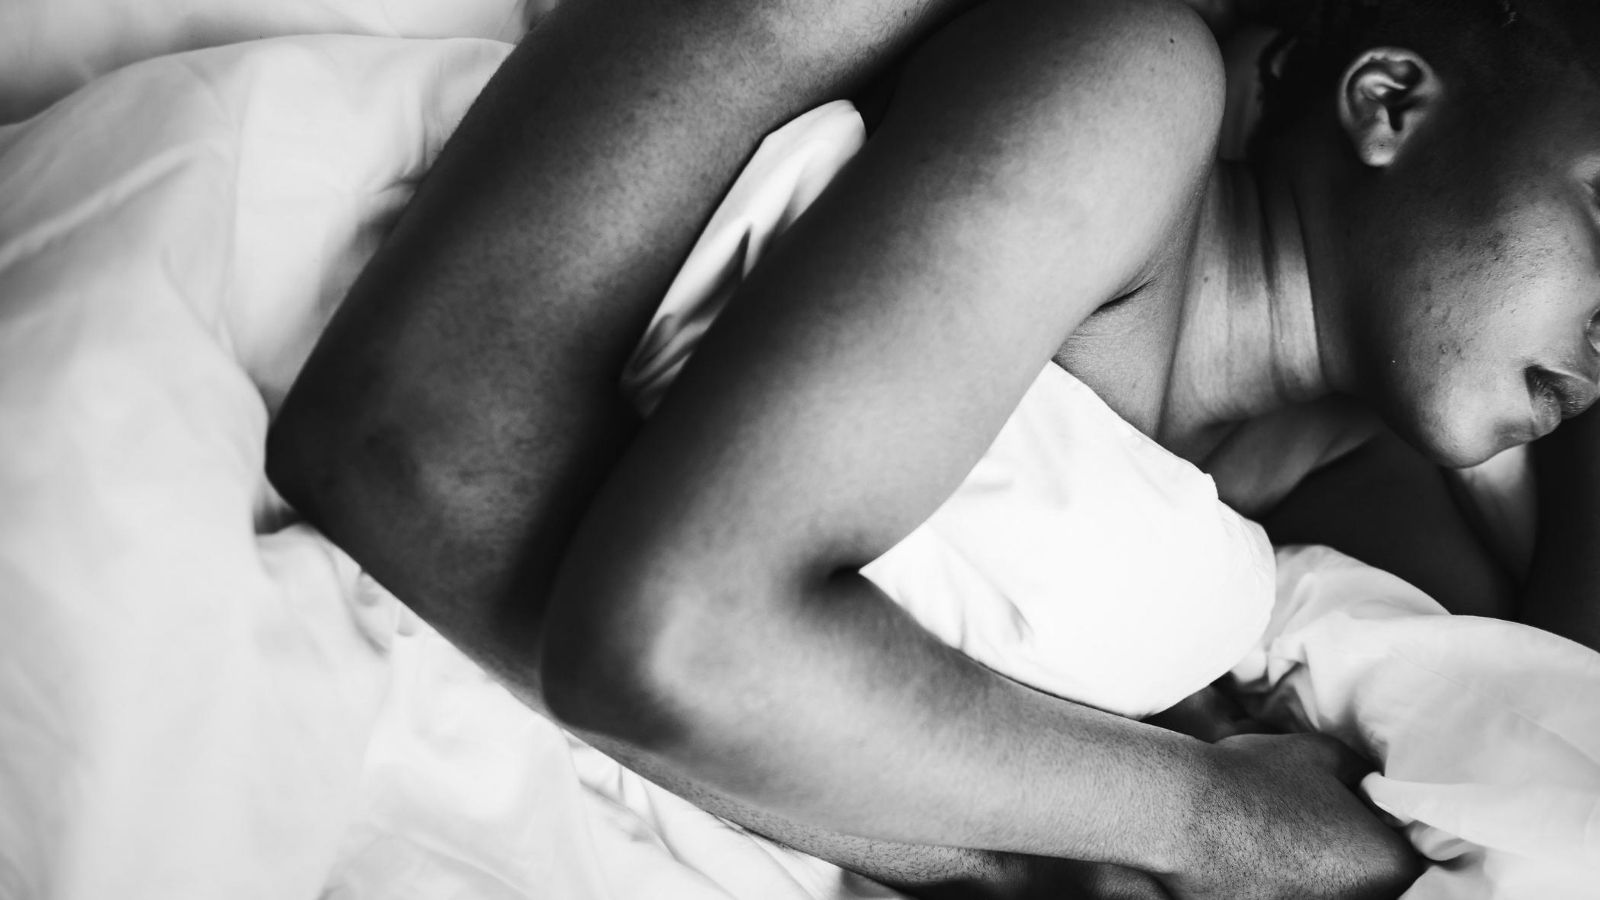 A black and white image of a couple in bed